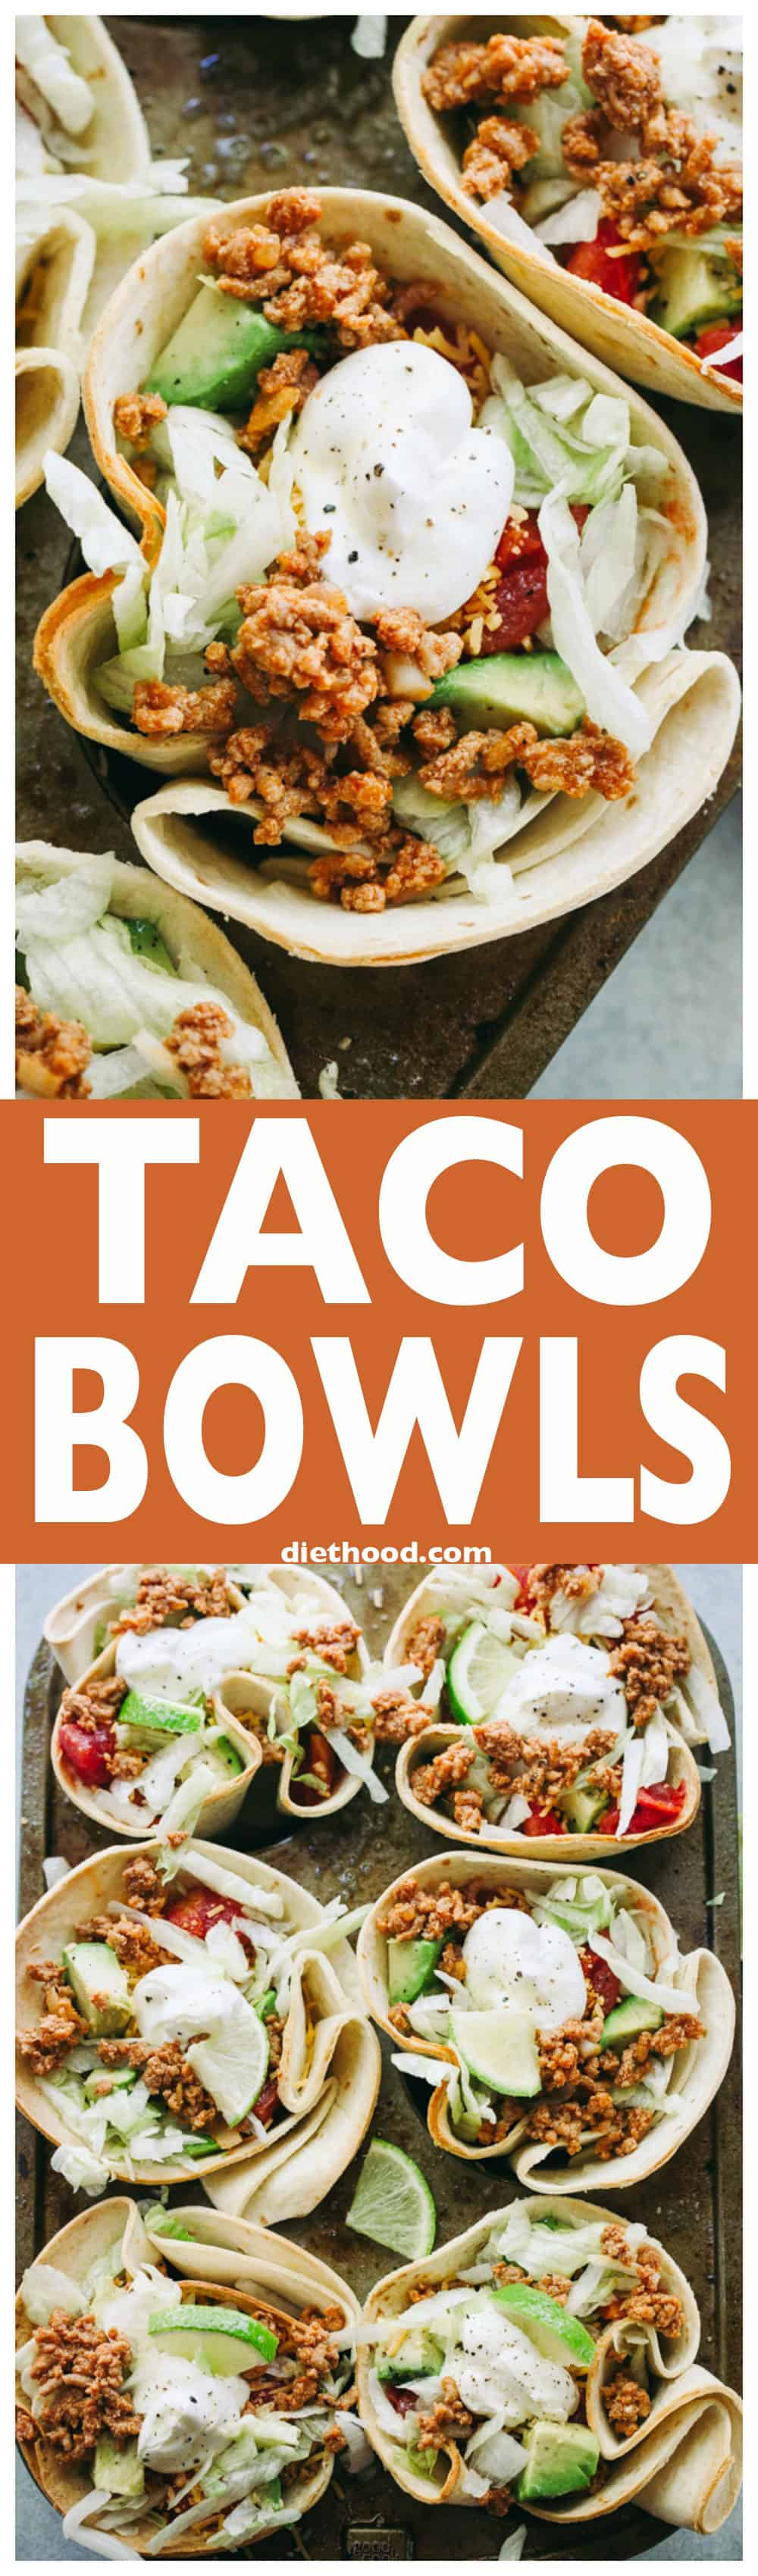 Taco Bowls - Fun and delicious baked flour tortilla bowls filled with taco-seasoned ground turkey meat, salad, tomatoes, cheese, and topped with a dollop of sour cream!